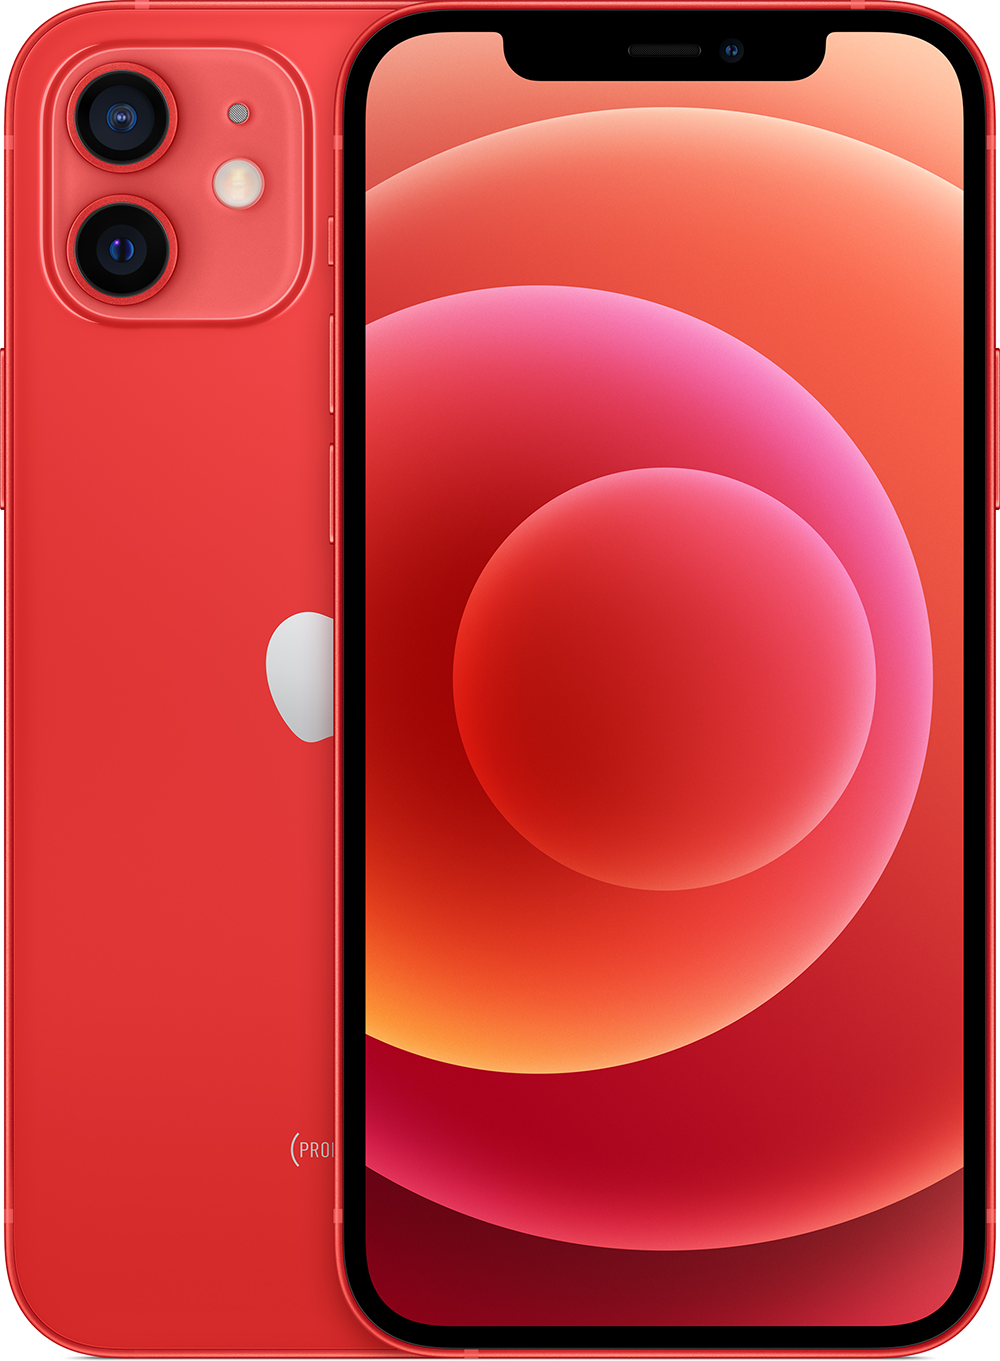 APPLE iPhone 12 – 128 GB (PRODUCT)RED 5G